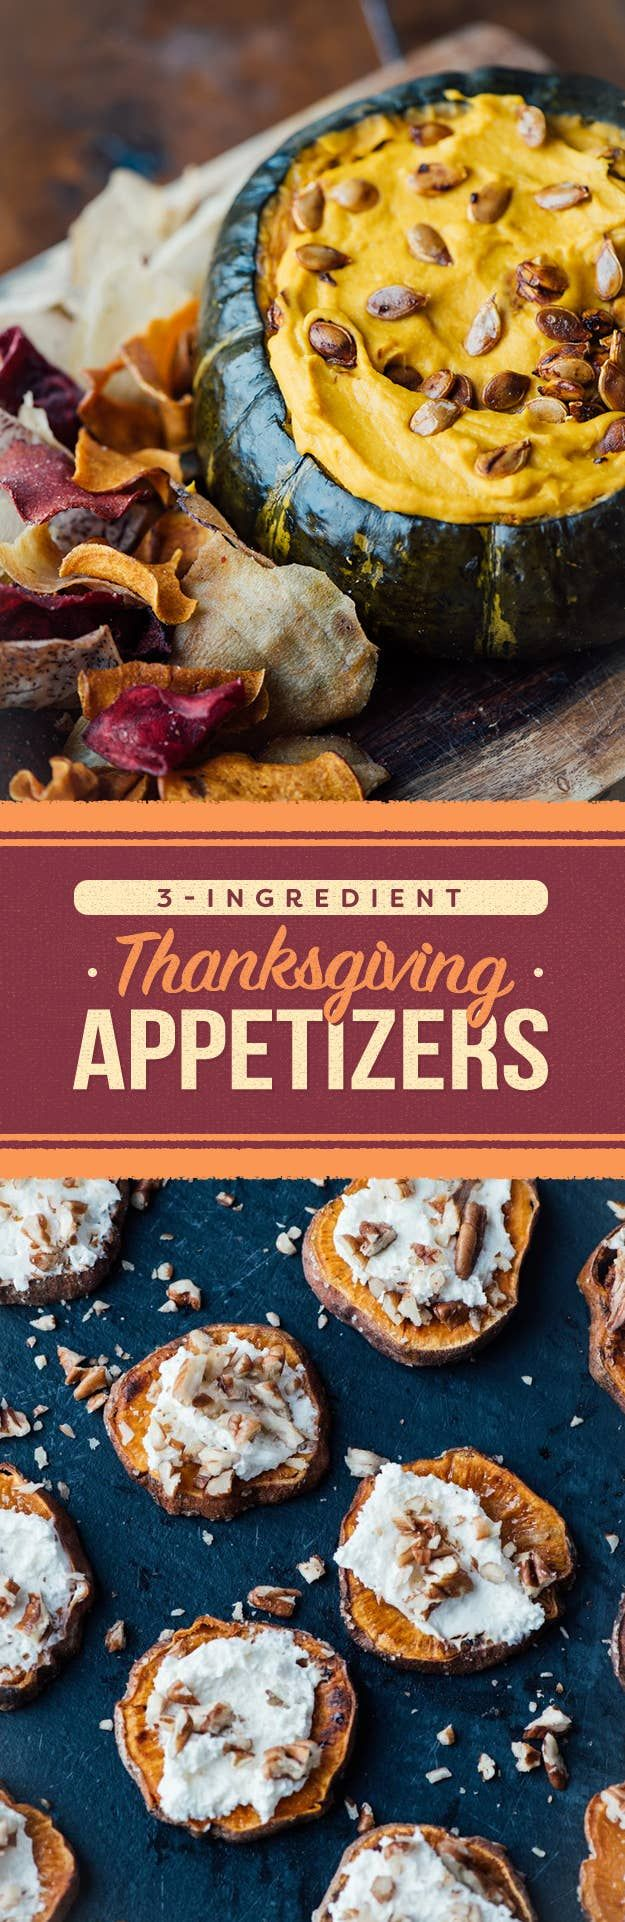 9 Easy 3Ingredient Appetizers To Make For Thanksgiving